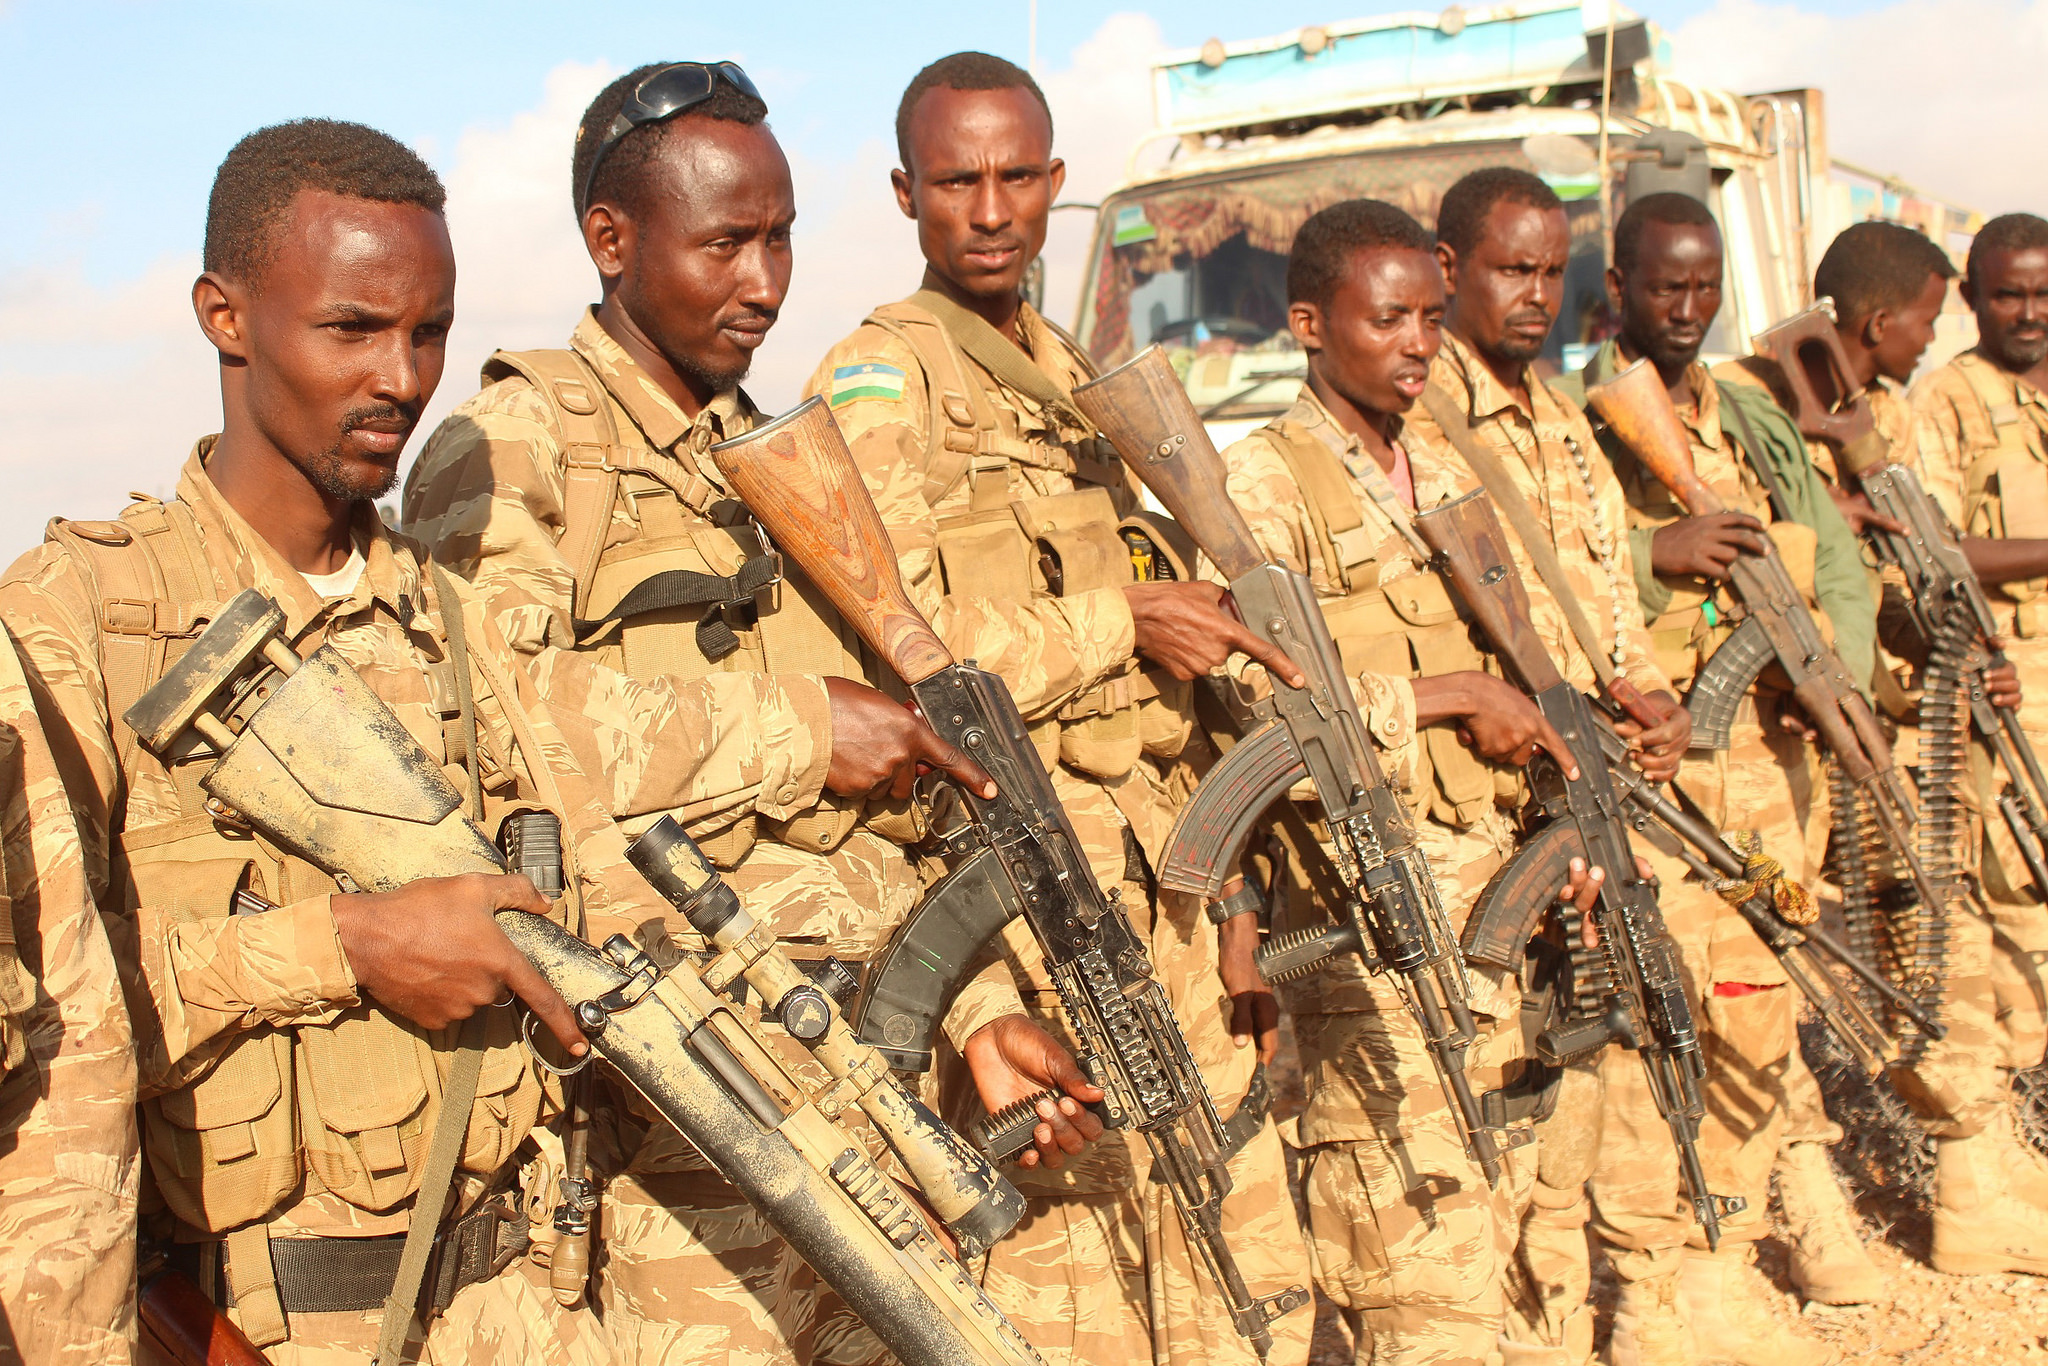 al shabaab using child soldiers in desperate effort to